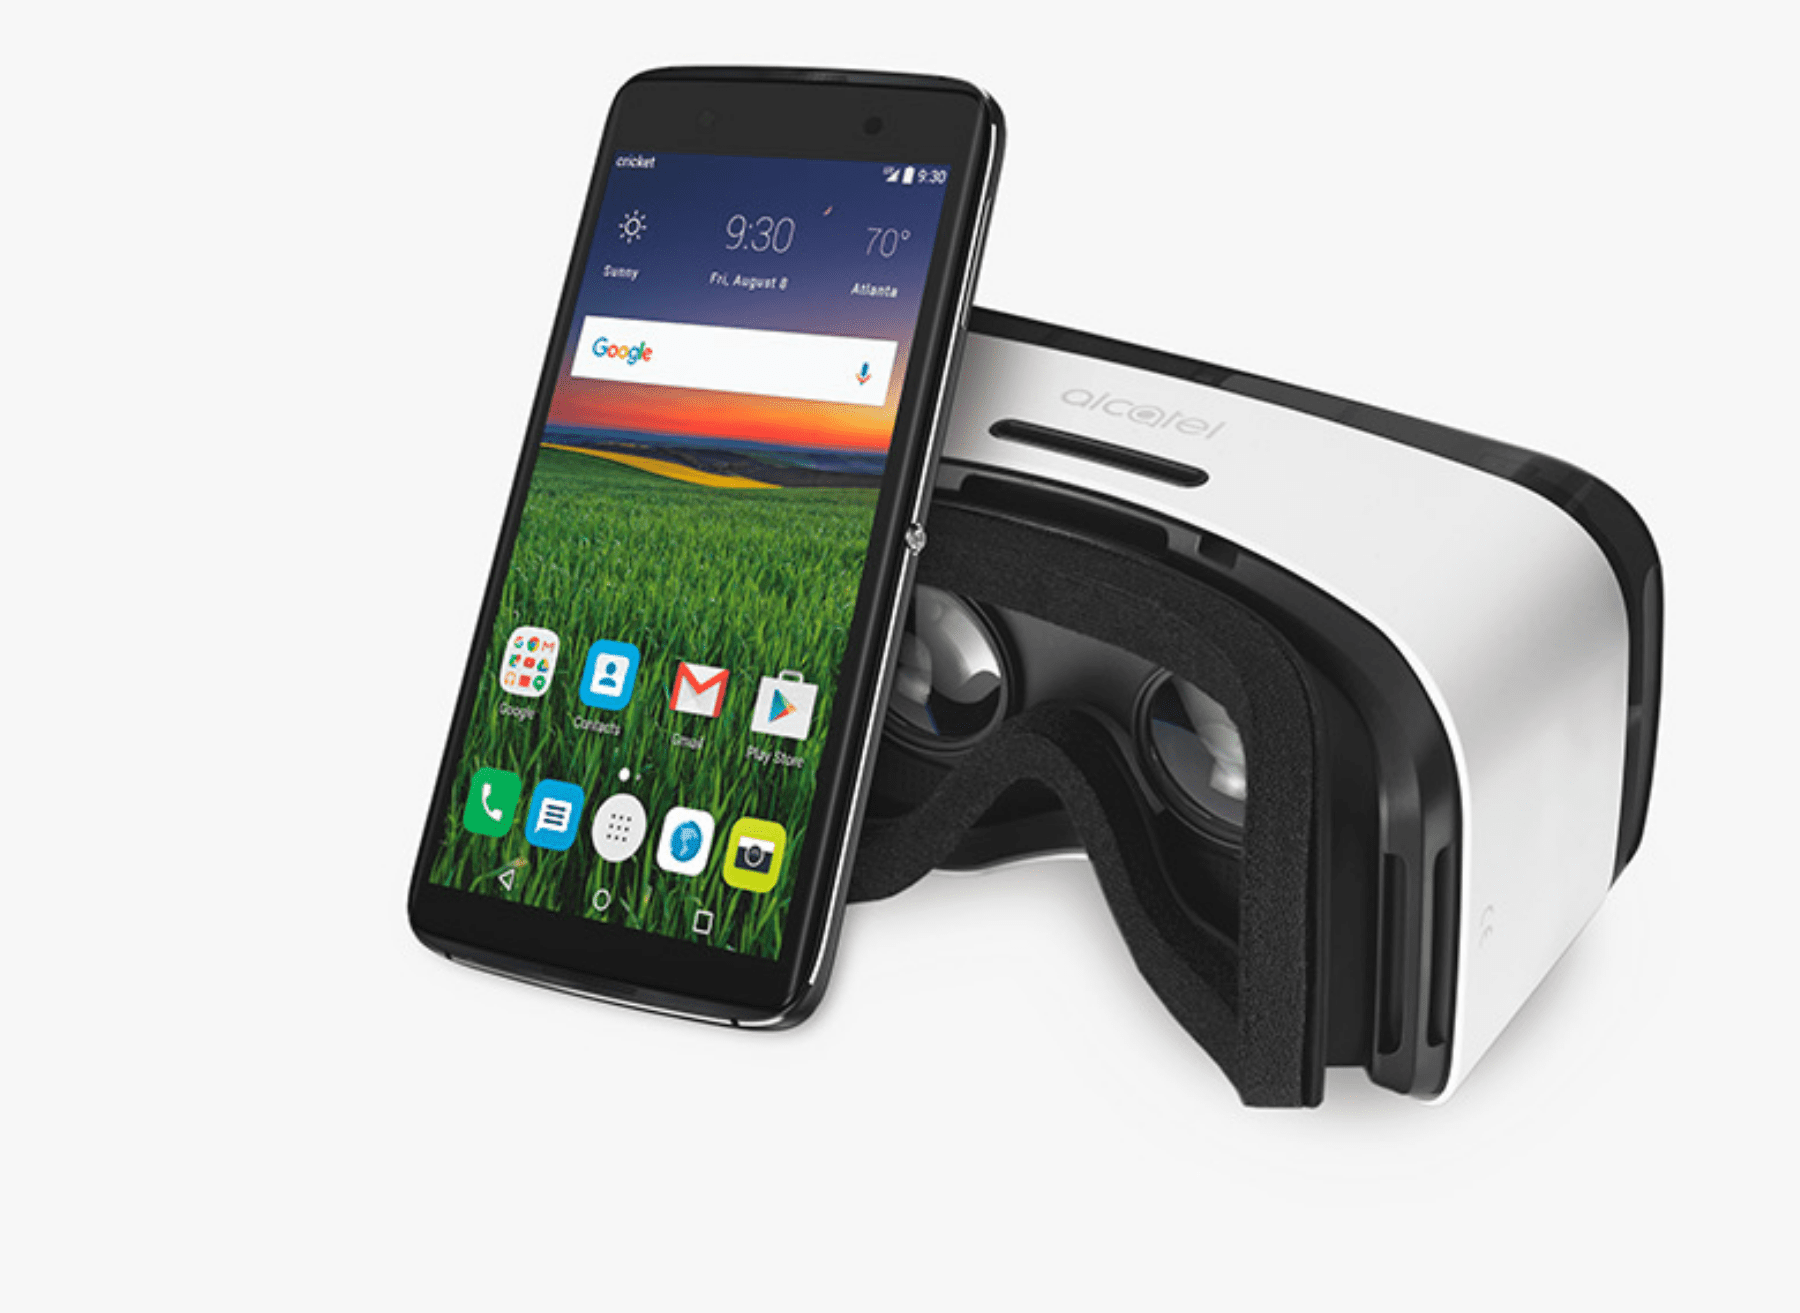 Alcatel One Touch Idol 4 phone next to a VR headset